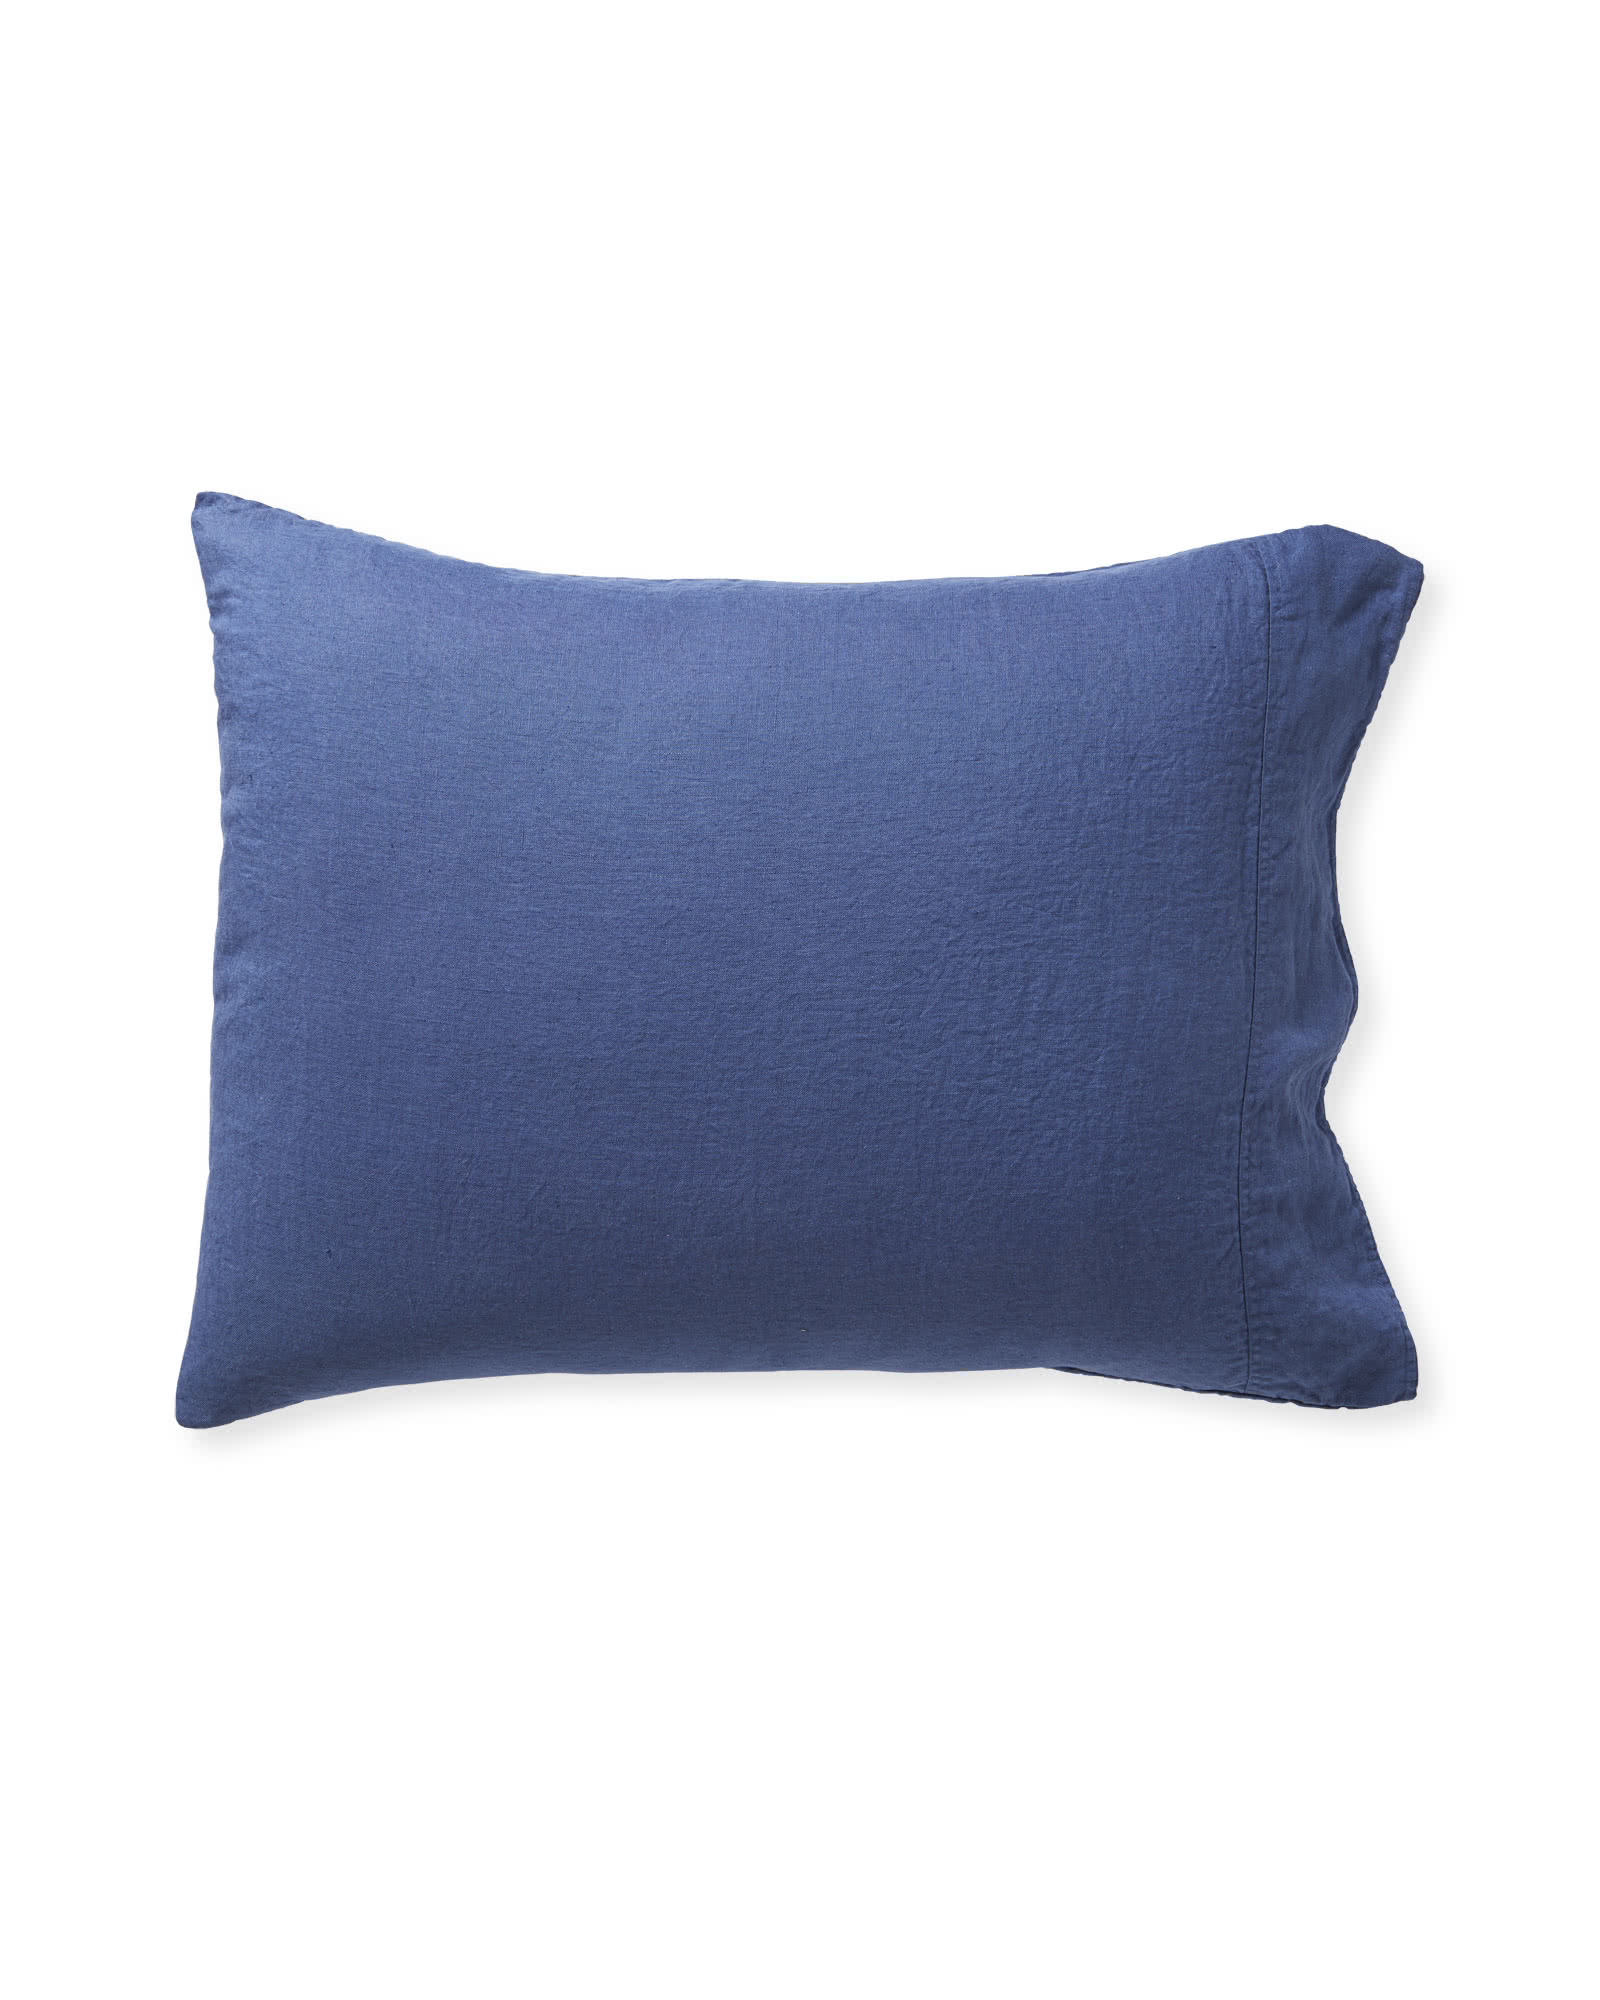 Positano Linen Pillowcases (Extra Set of 2), Vintage Indigo